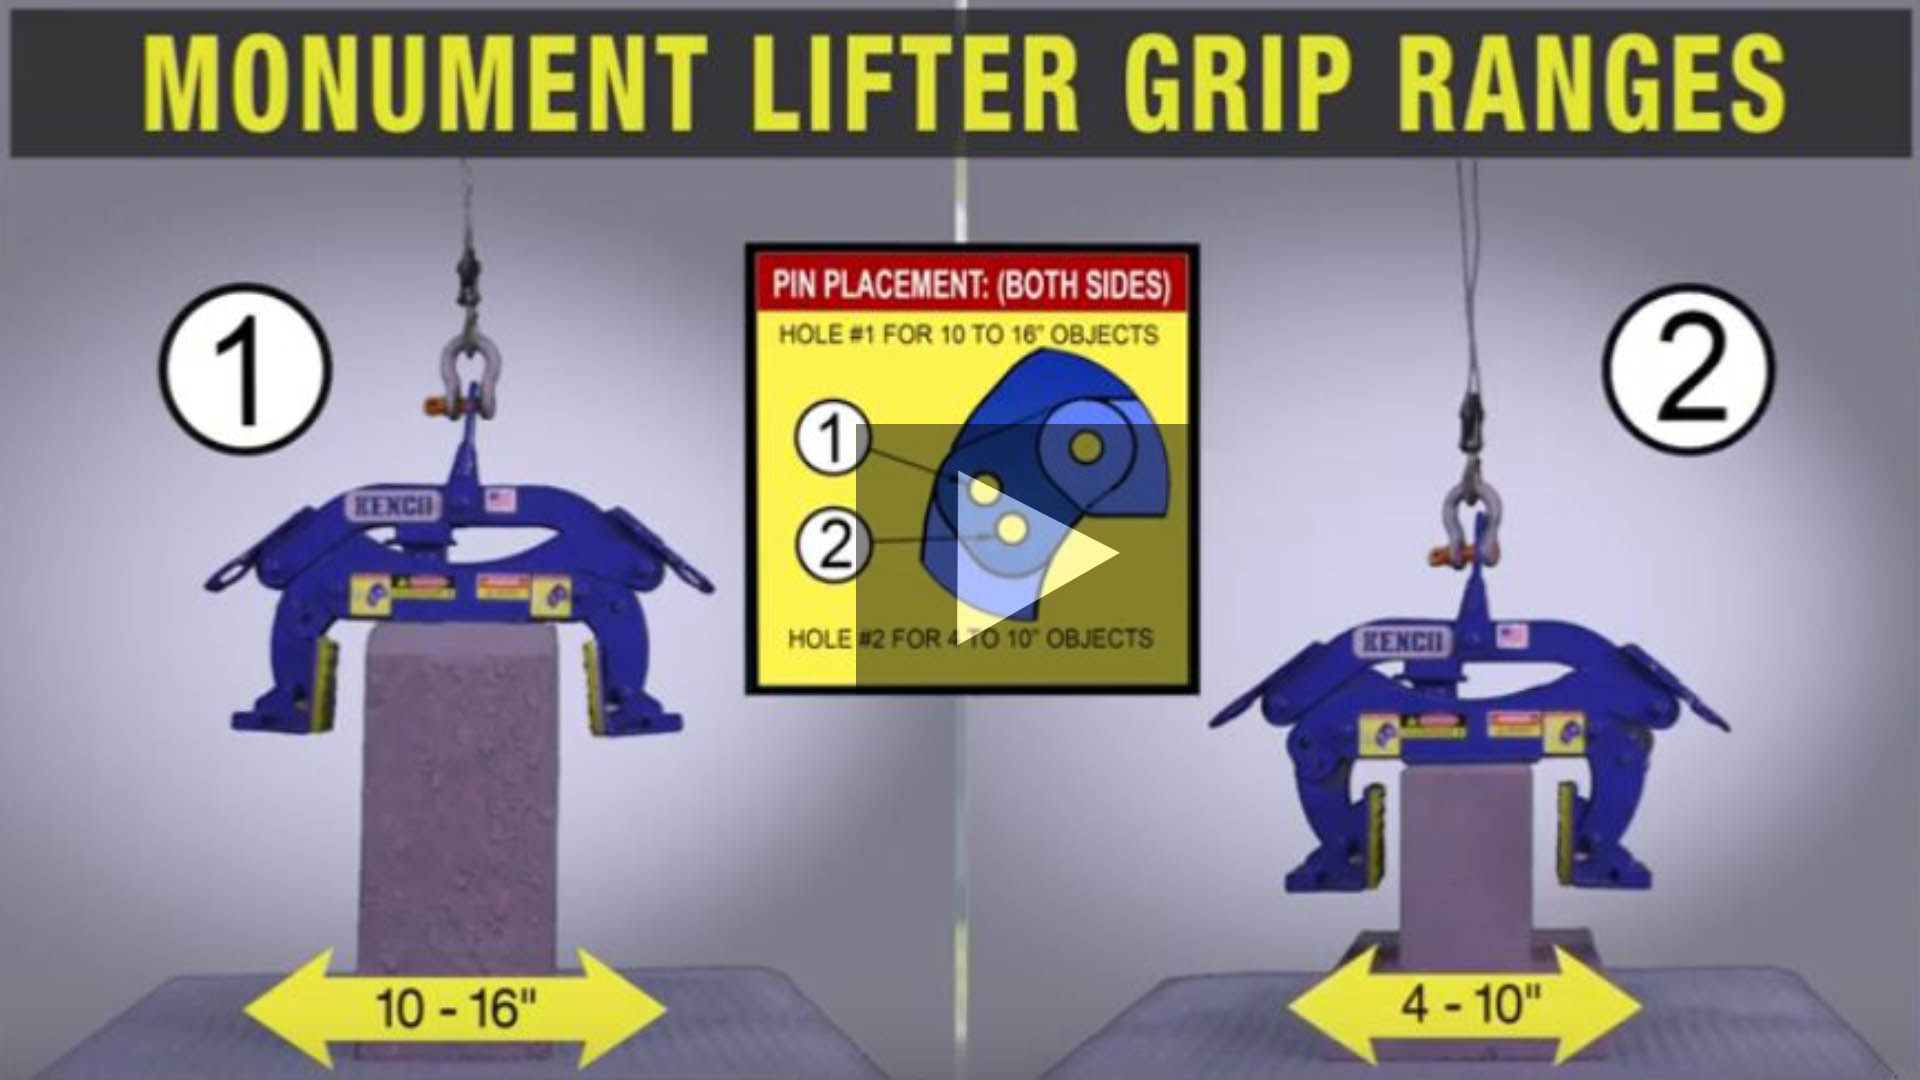 Grip Ranges of Monument Curb Lifter